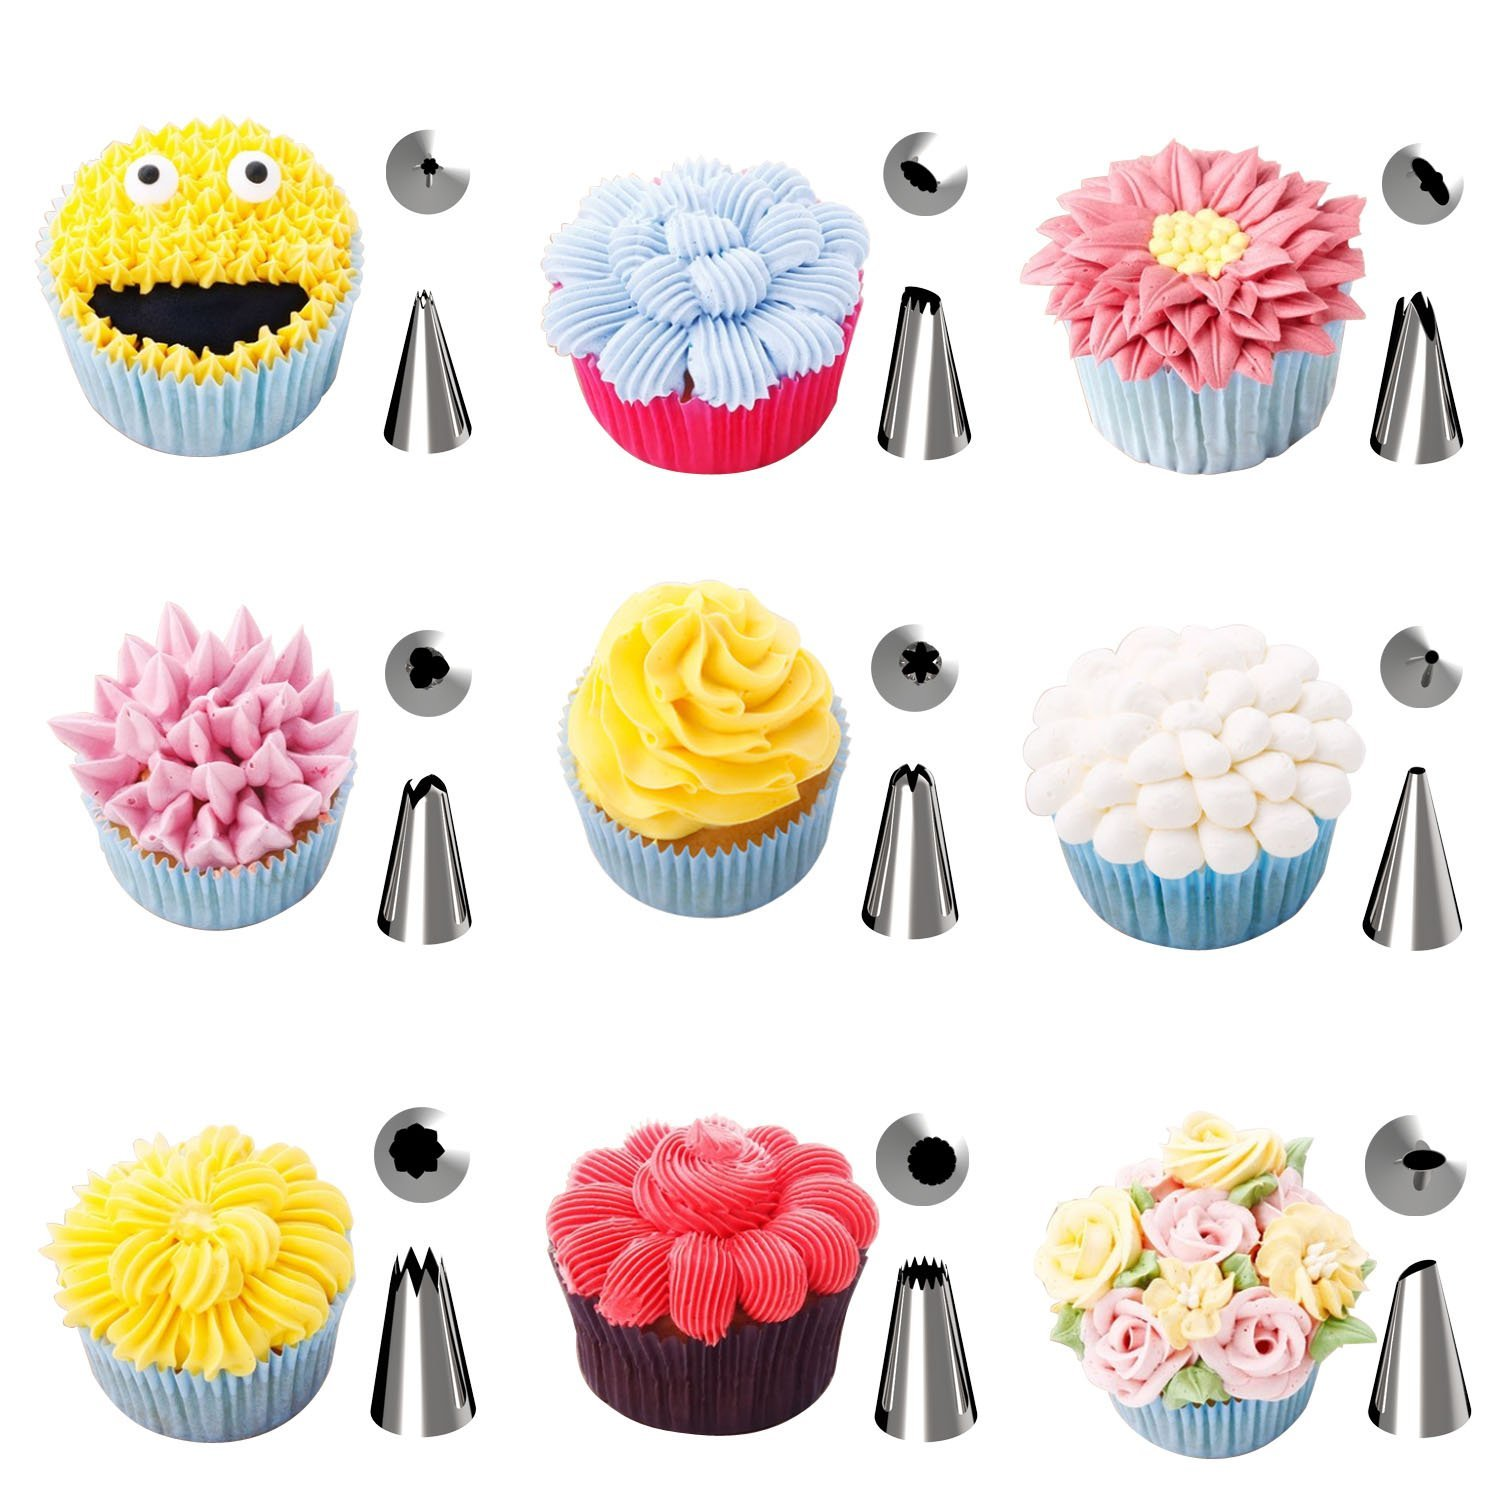 Everyone likes these kinds of cake decorating kit tips for Decorating advice